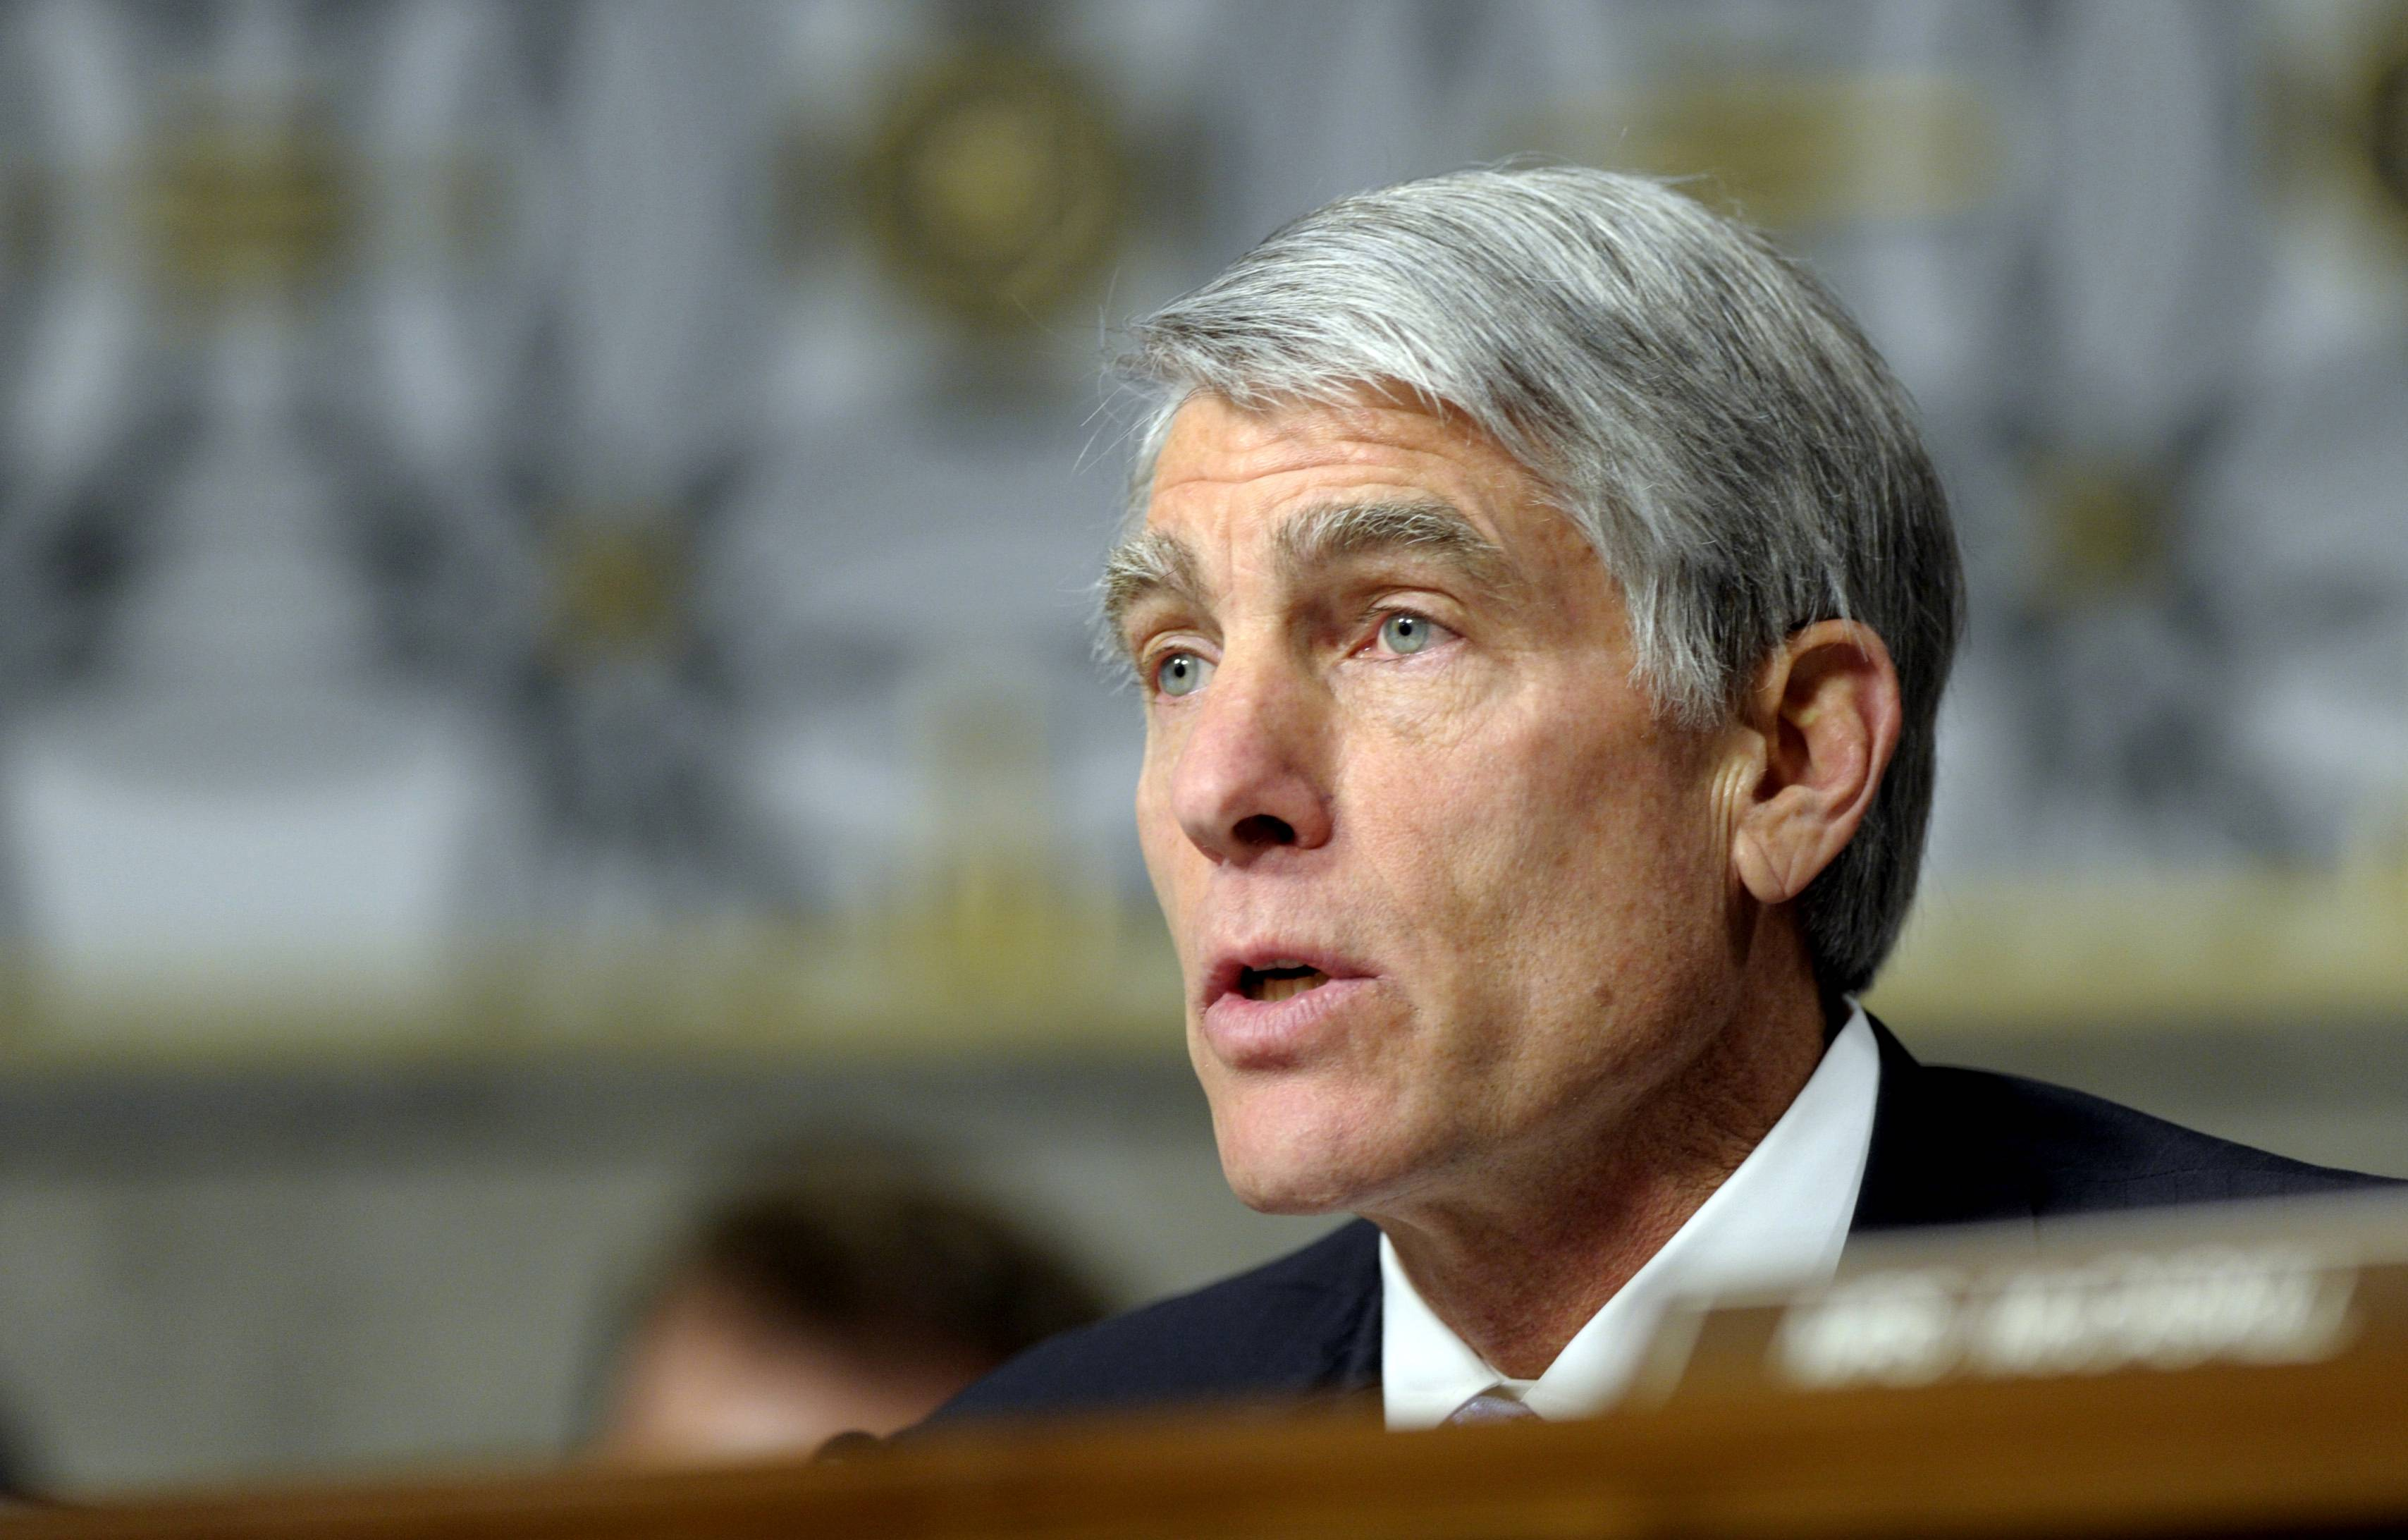 President Barack Obama will headline a high-dollar fundraiser for Sen. Mark Udall, seen here, of Colorado, Wednesday but the event is off-limits to news cameras.